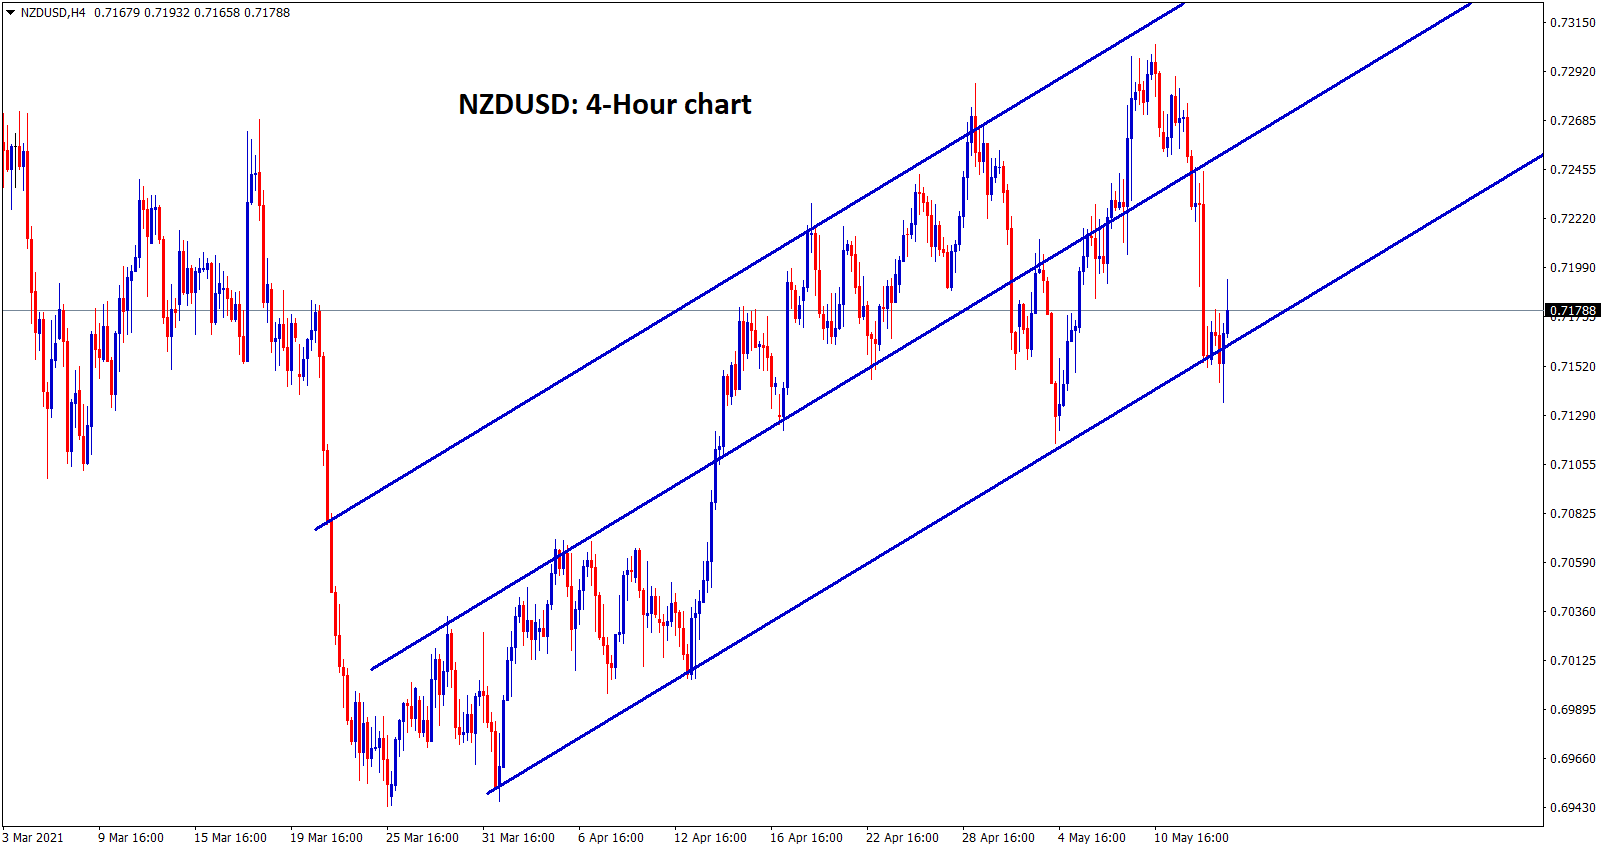 NZDUSD reach the higher low level in 4 hour chart.